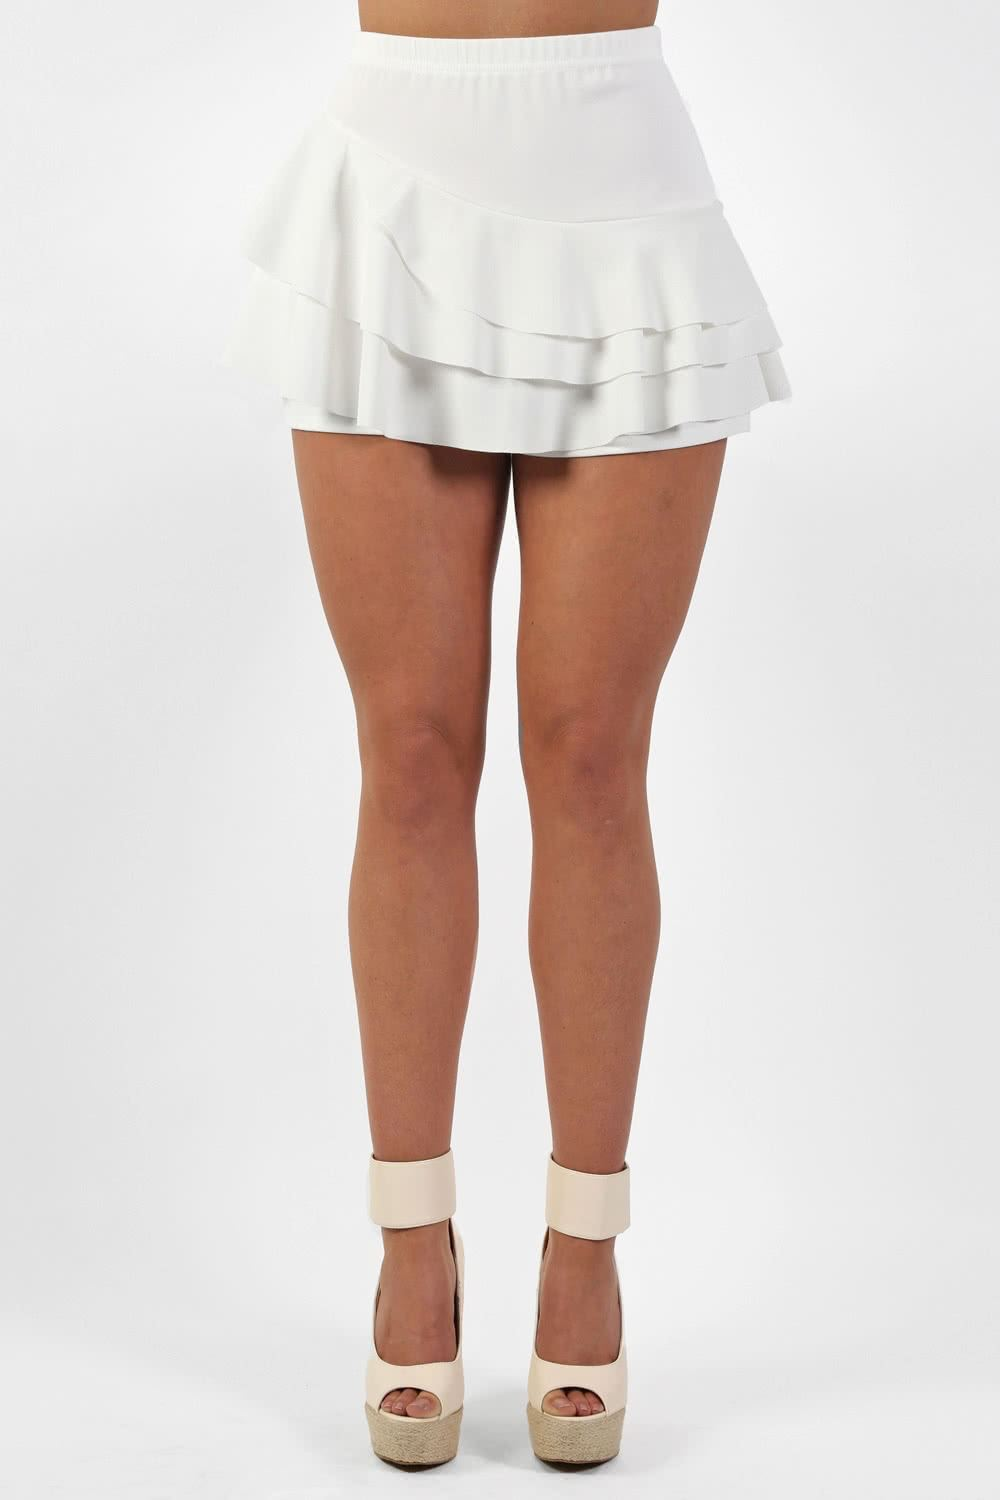 Skirts - Multi Layer Plain Frill Skort In Cream